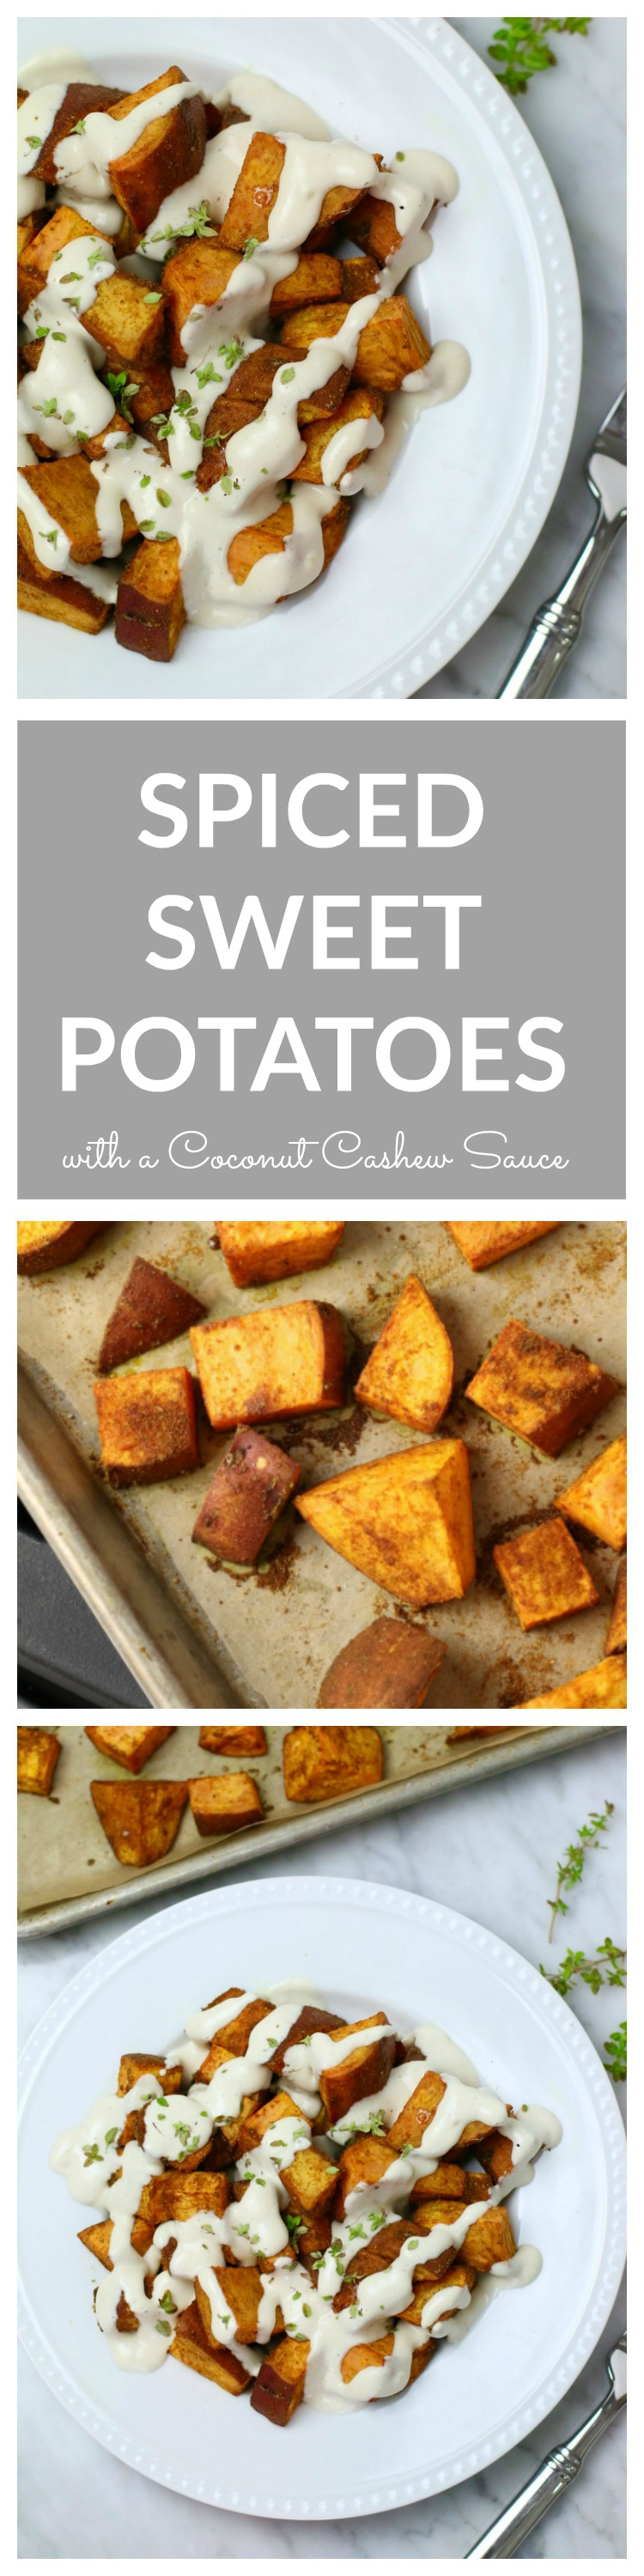 Spiced Sweet Potatoes with a Coconut Cashew Cream Sauce